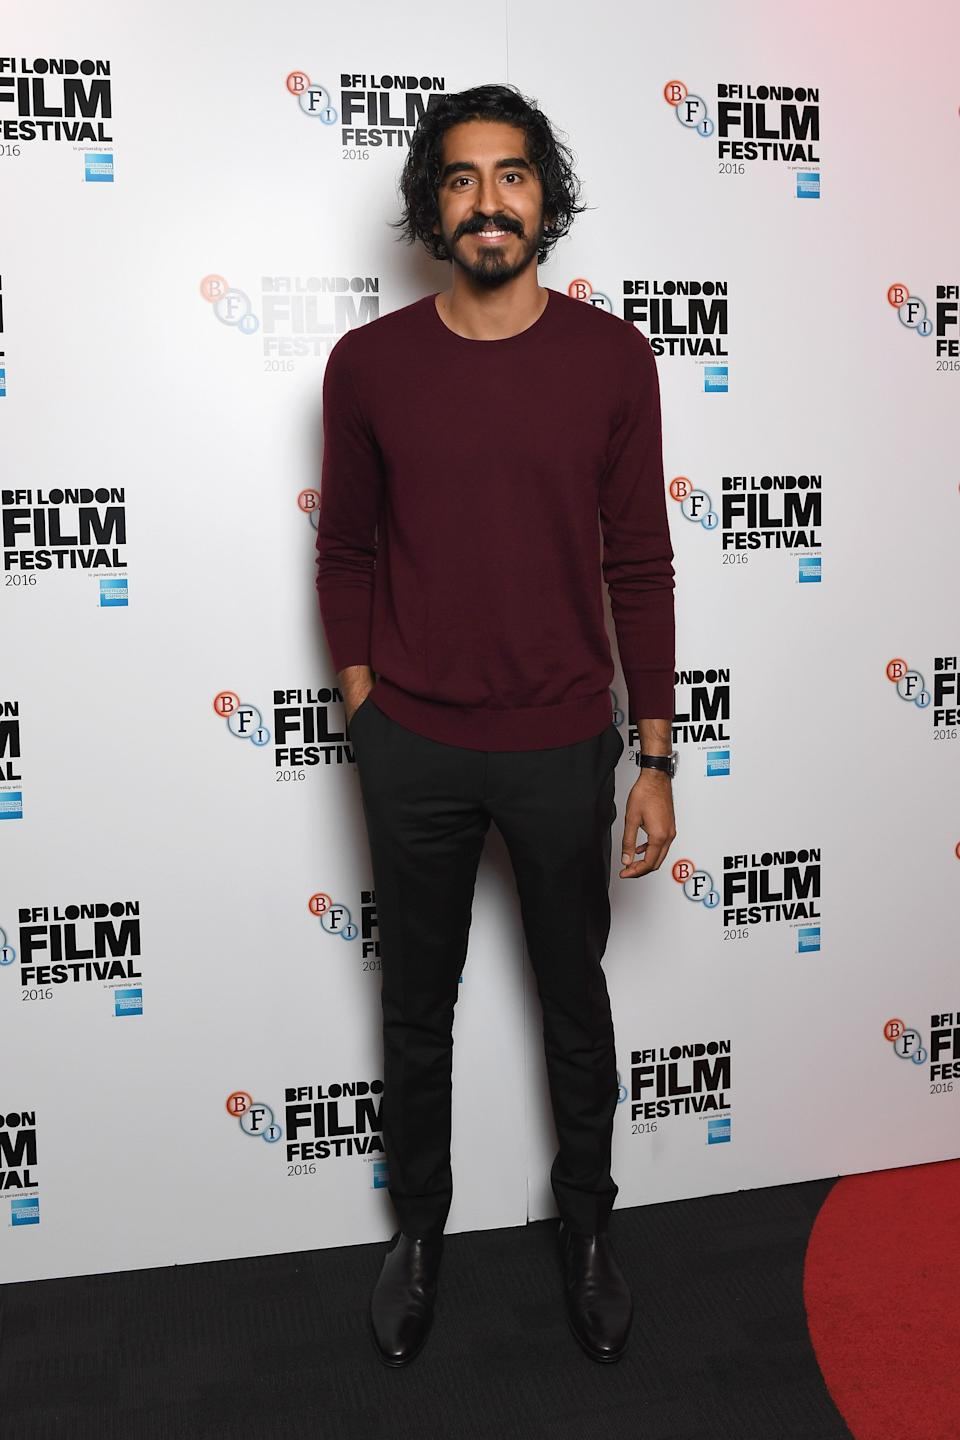 Patel at the 60th BFI London Film Festival at Picturehouse Central in London on Oct. 12, 2016.